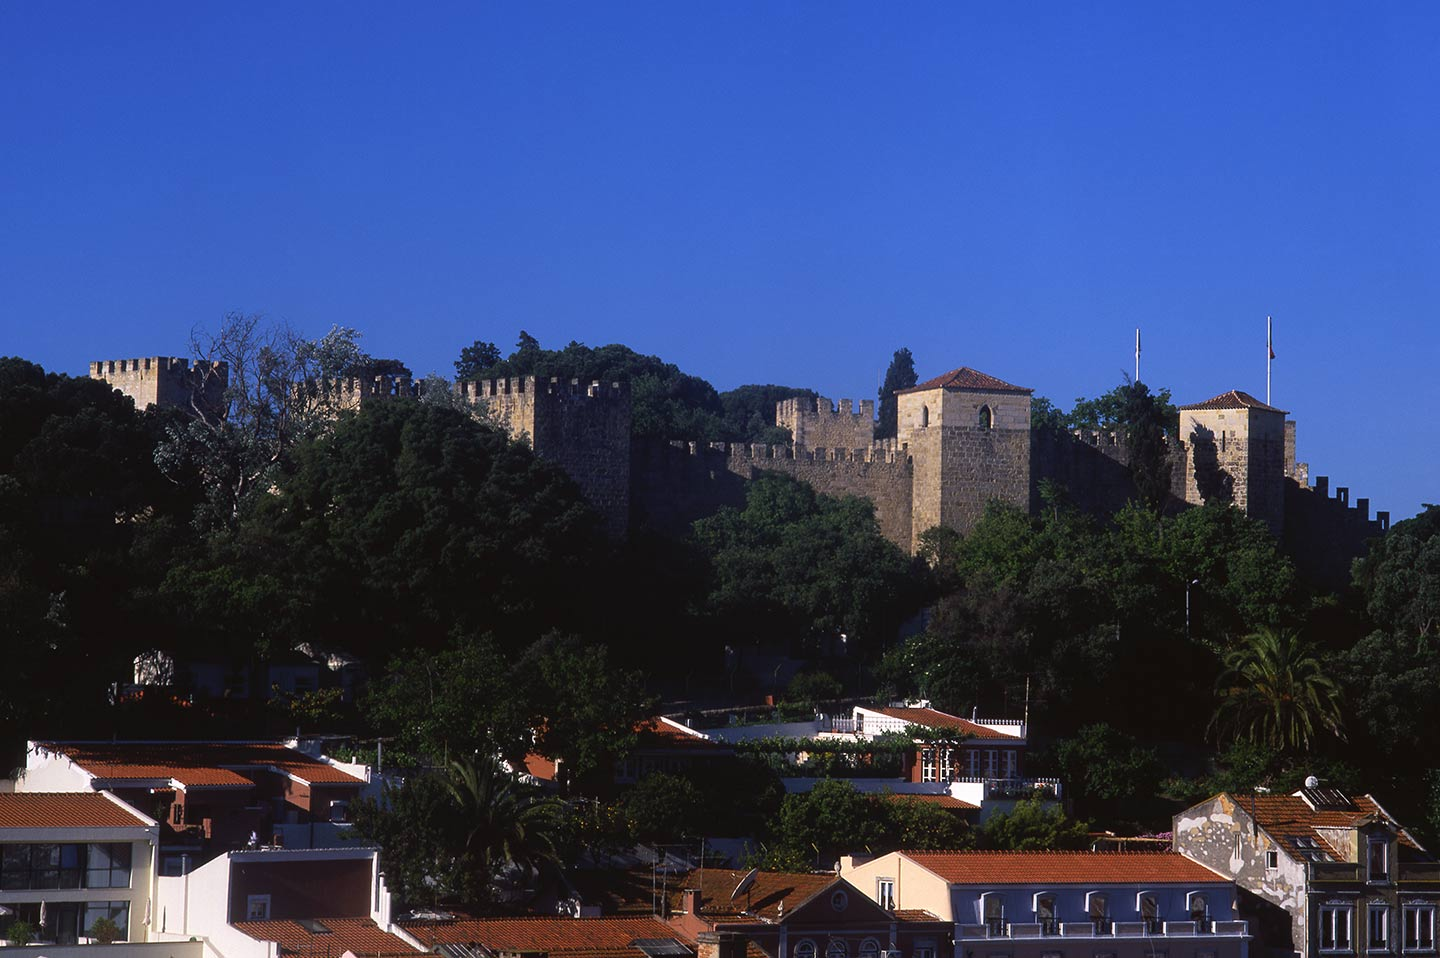 Image of the Castelo from the Miradouro da Graça, Lisbon